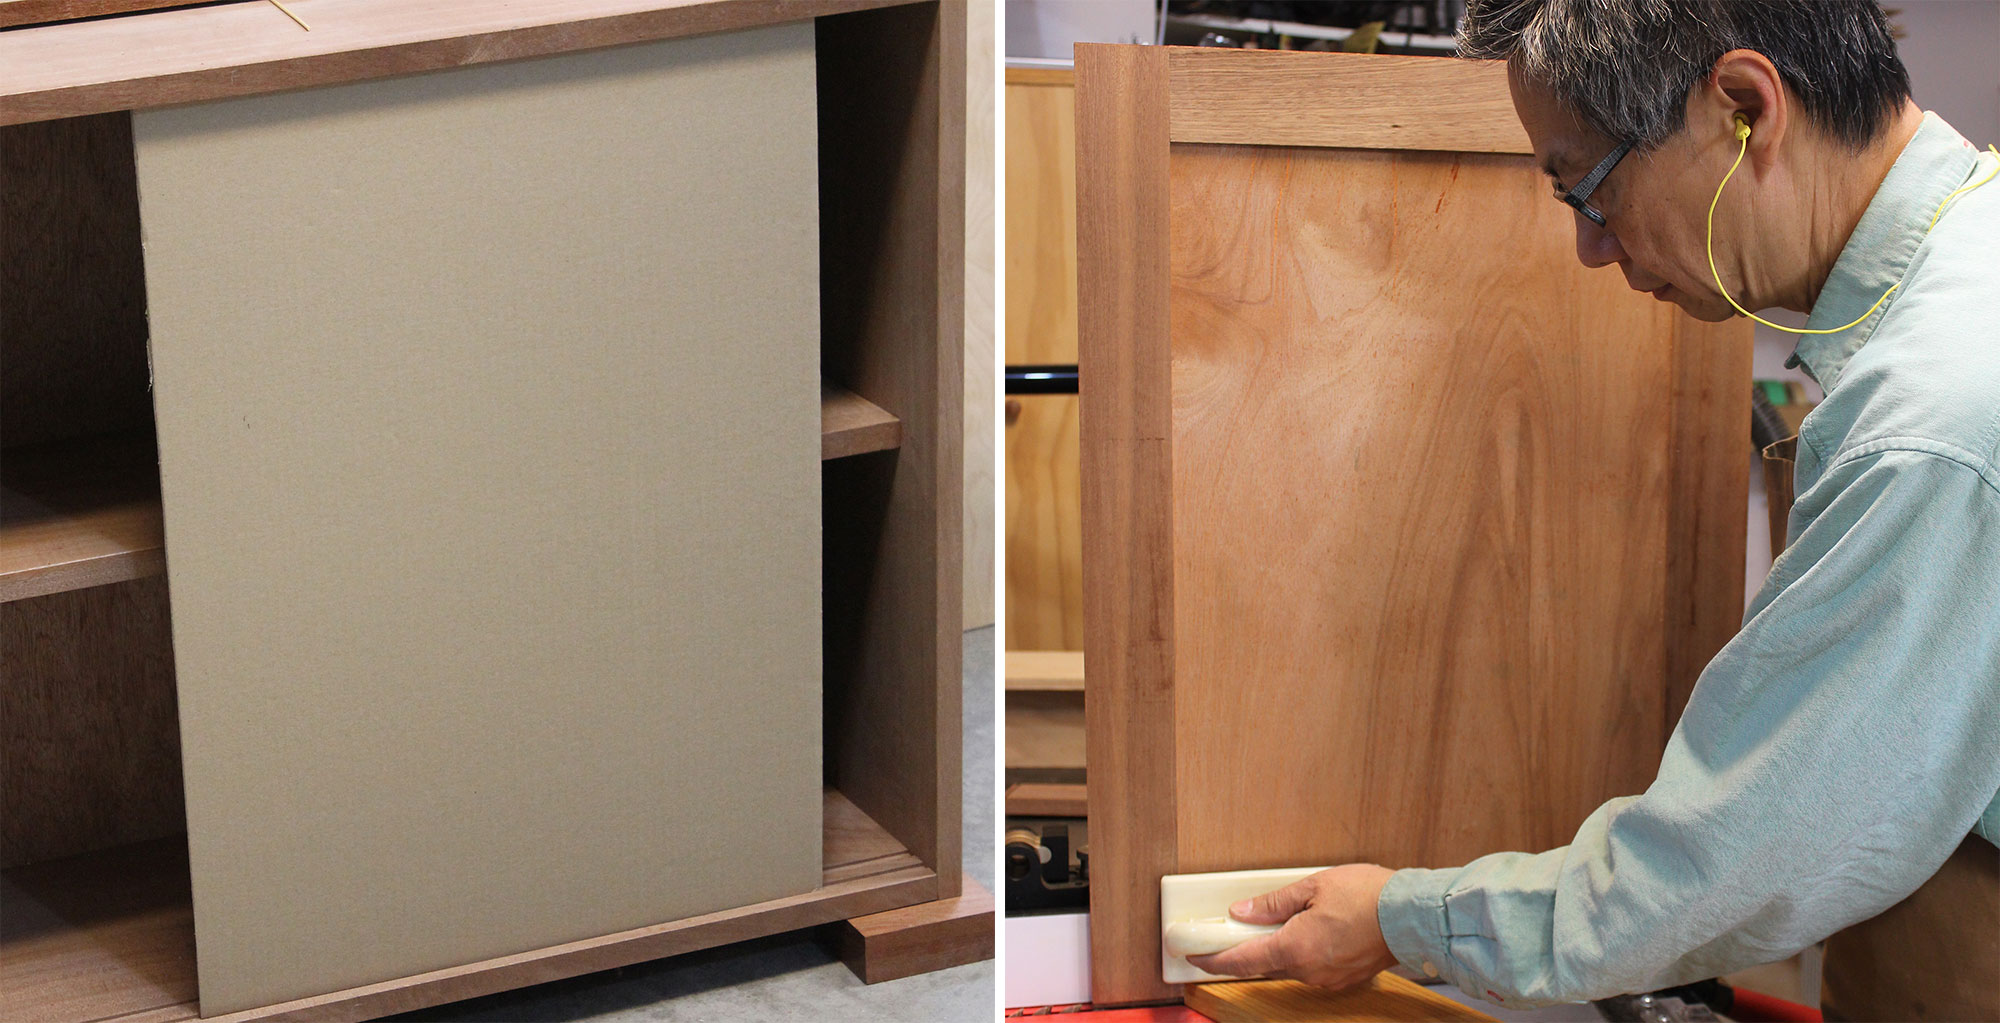 Left: Using two cardboard doors to confirm the accuracy of the author's size calculation. Right: Trimming the doors after the mock-up exercise.